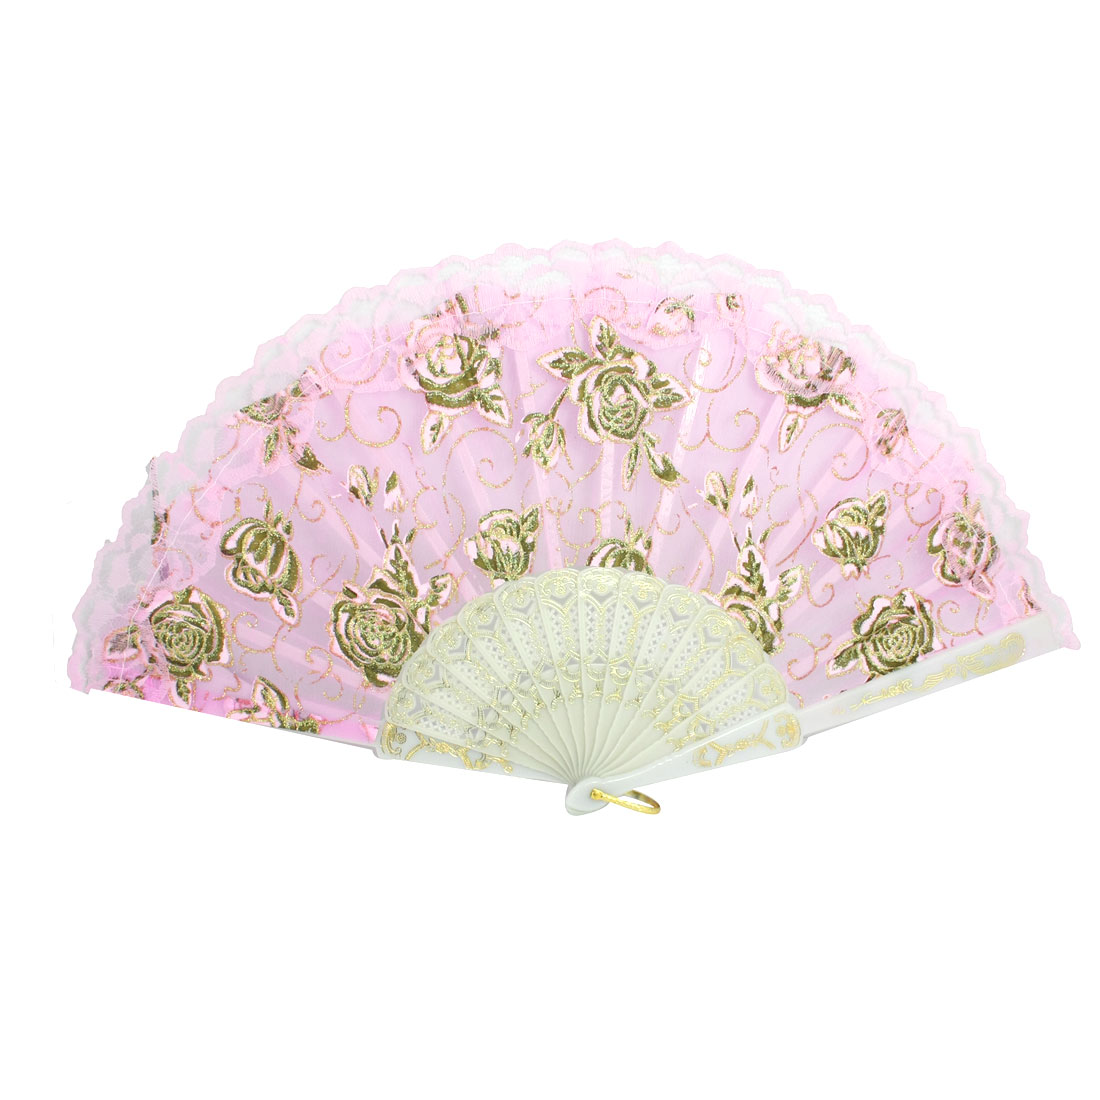 Lace Trim Plastic Frame Peony Print Pink Dance Folding Hand Fan